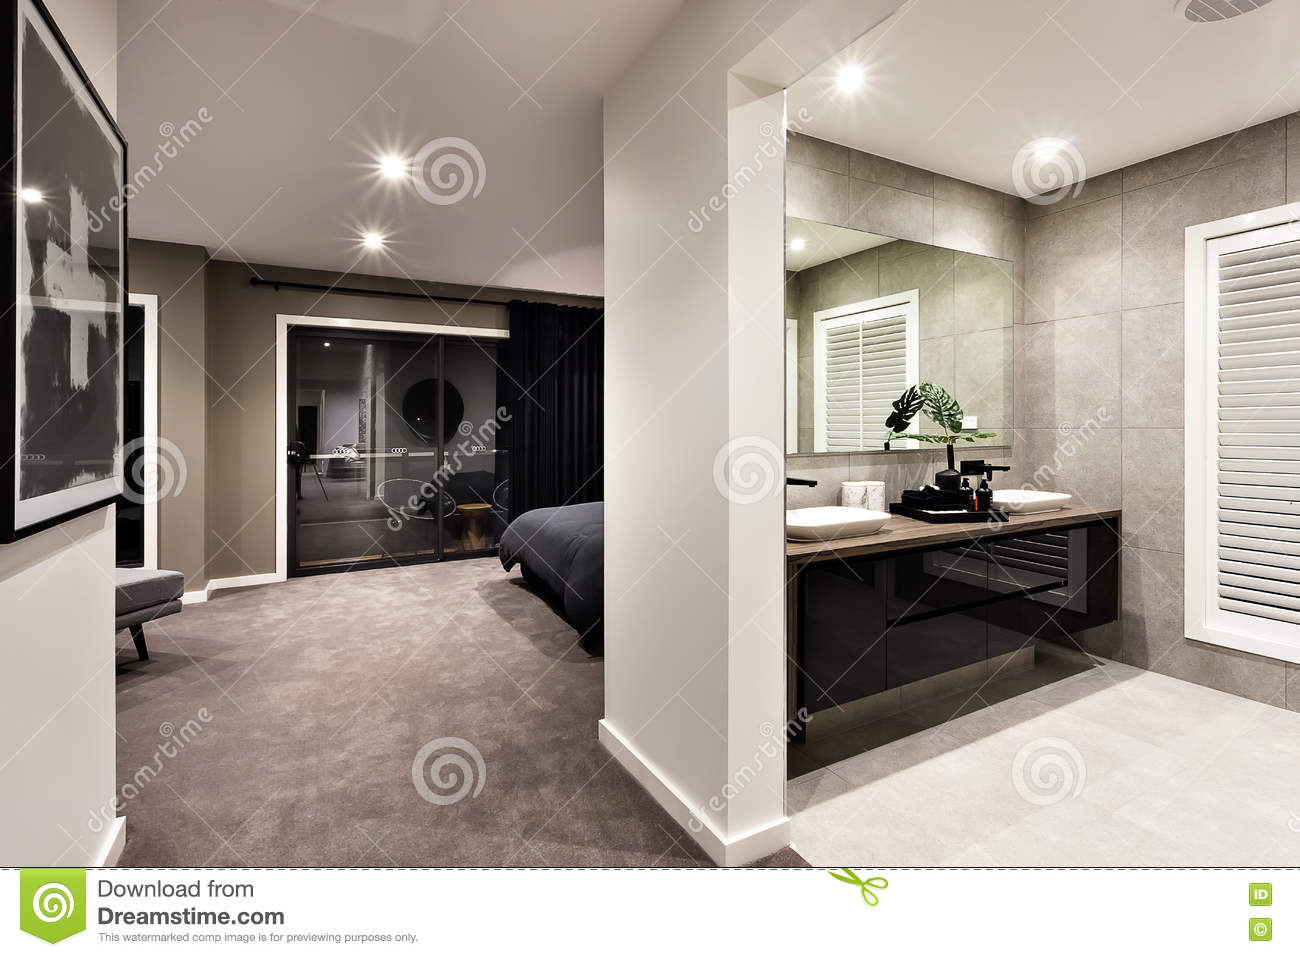 Modern washroom and hallway to a another room